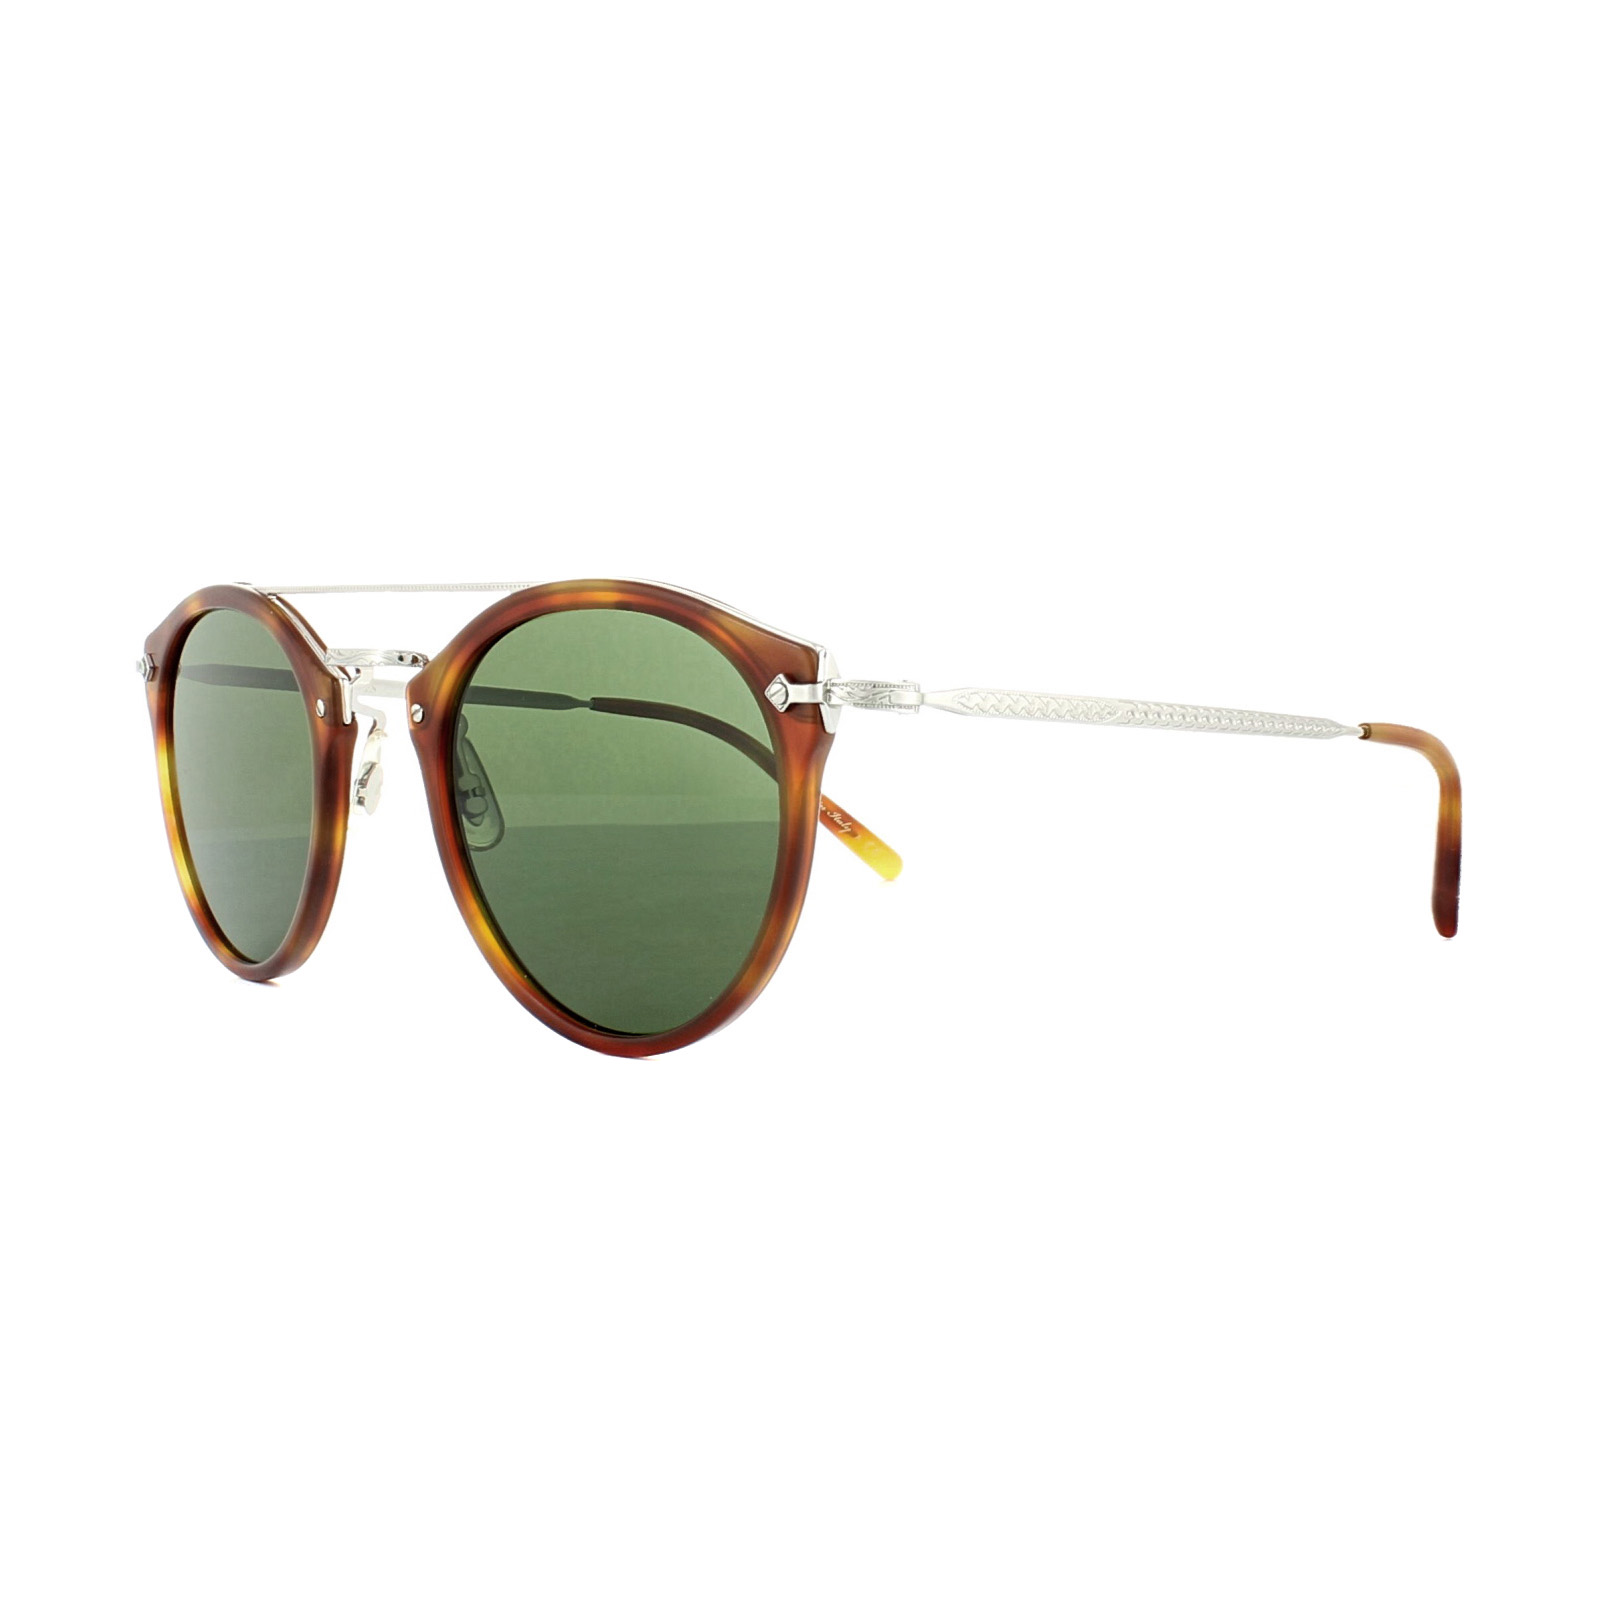 dea9c0421 Cheap Oliver Peoples Remick 5349 Sunglasses - Discounted Sunglasses